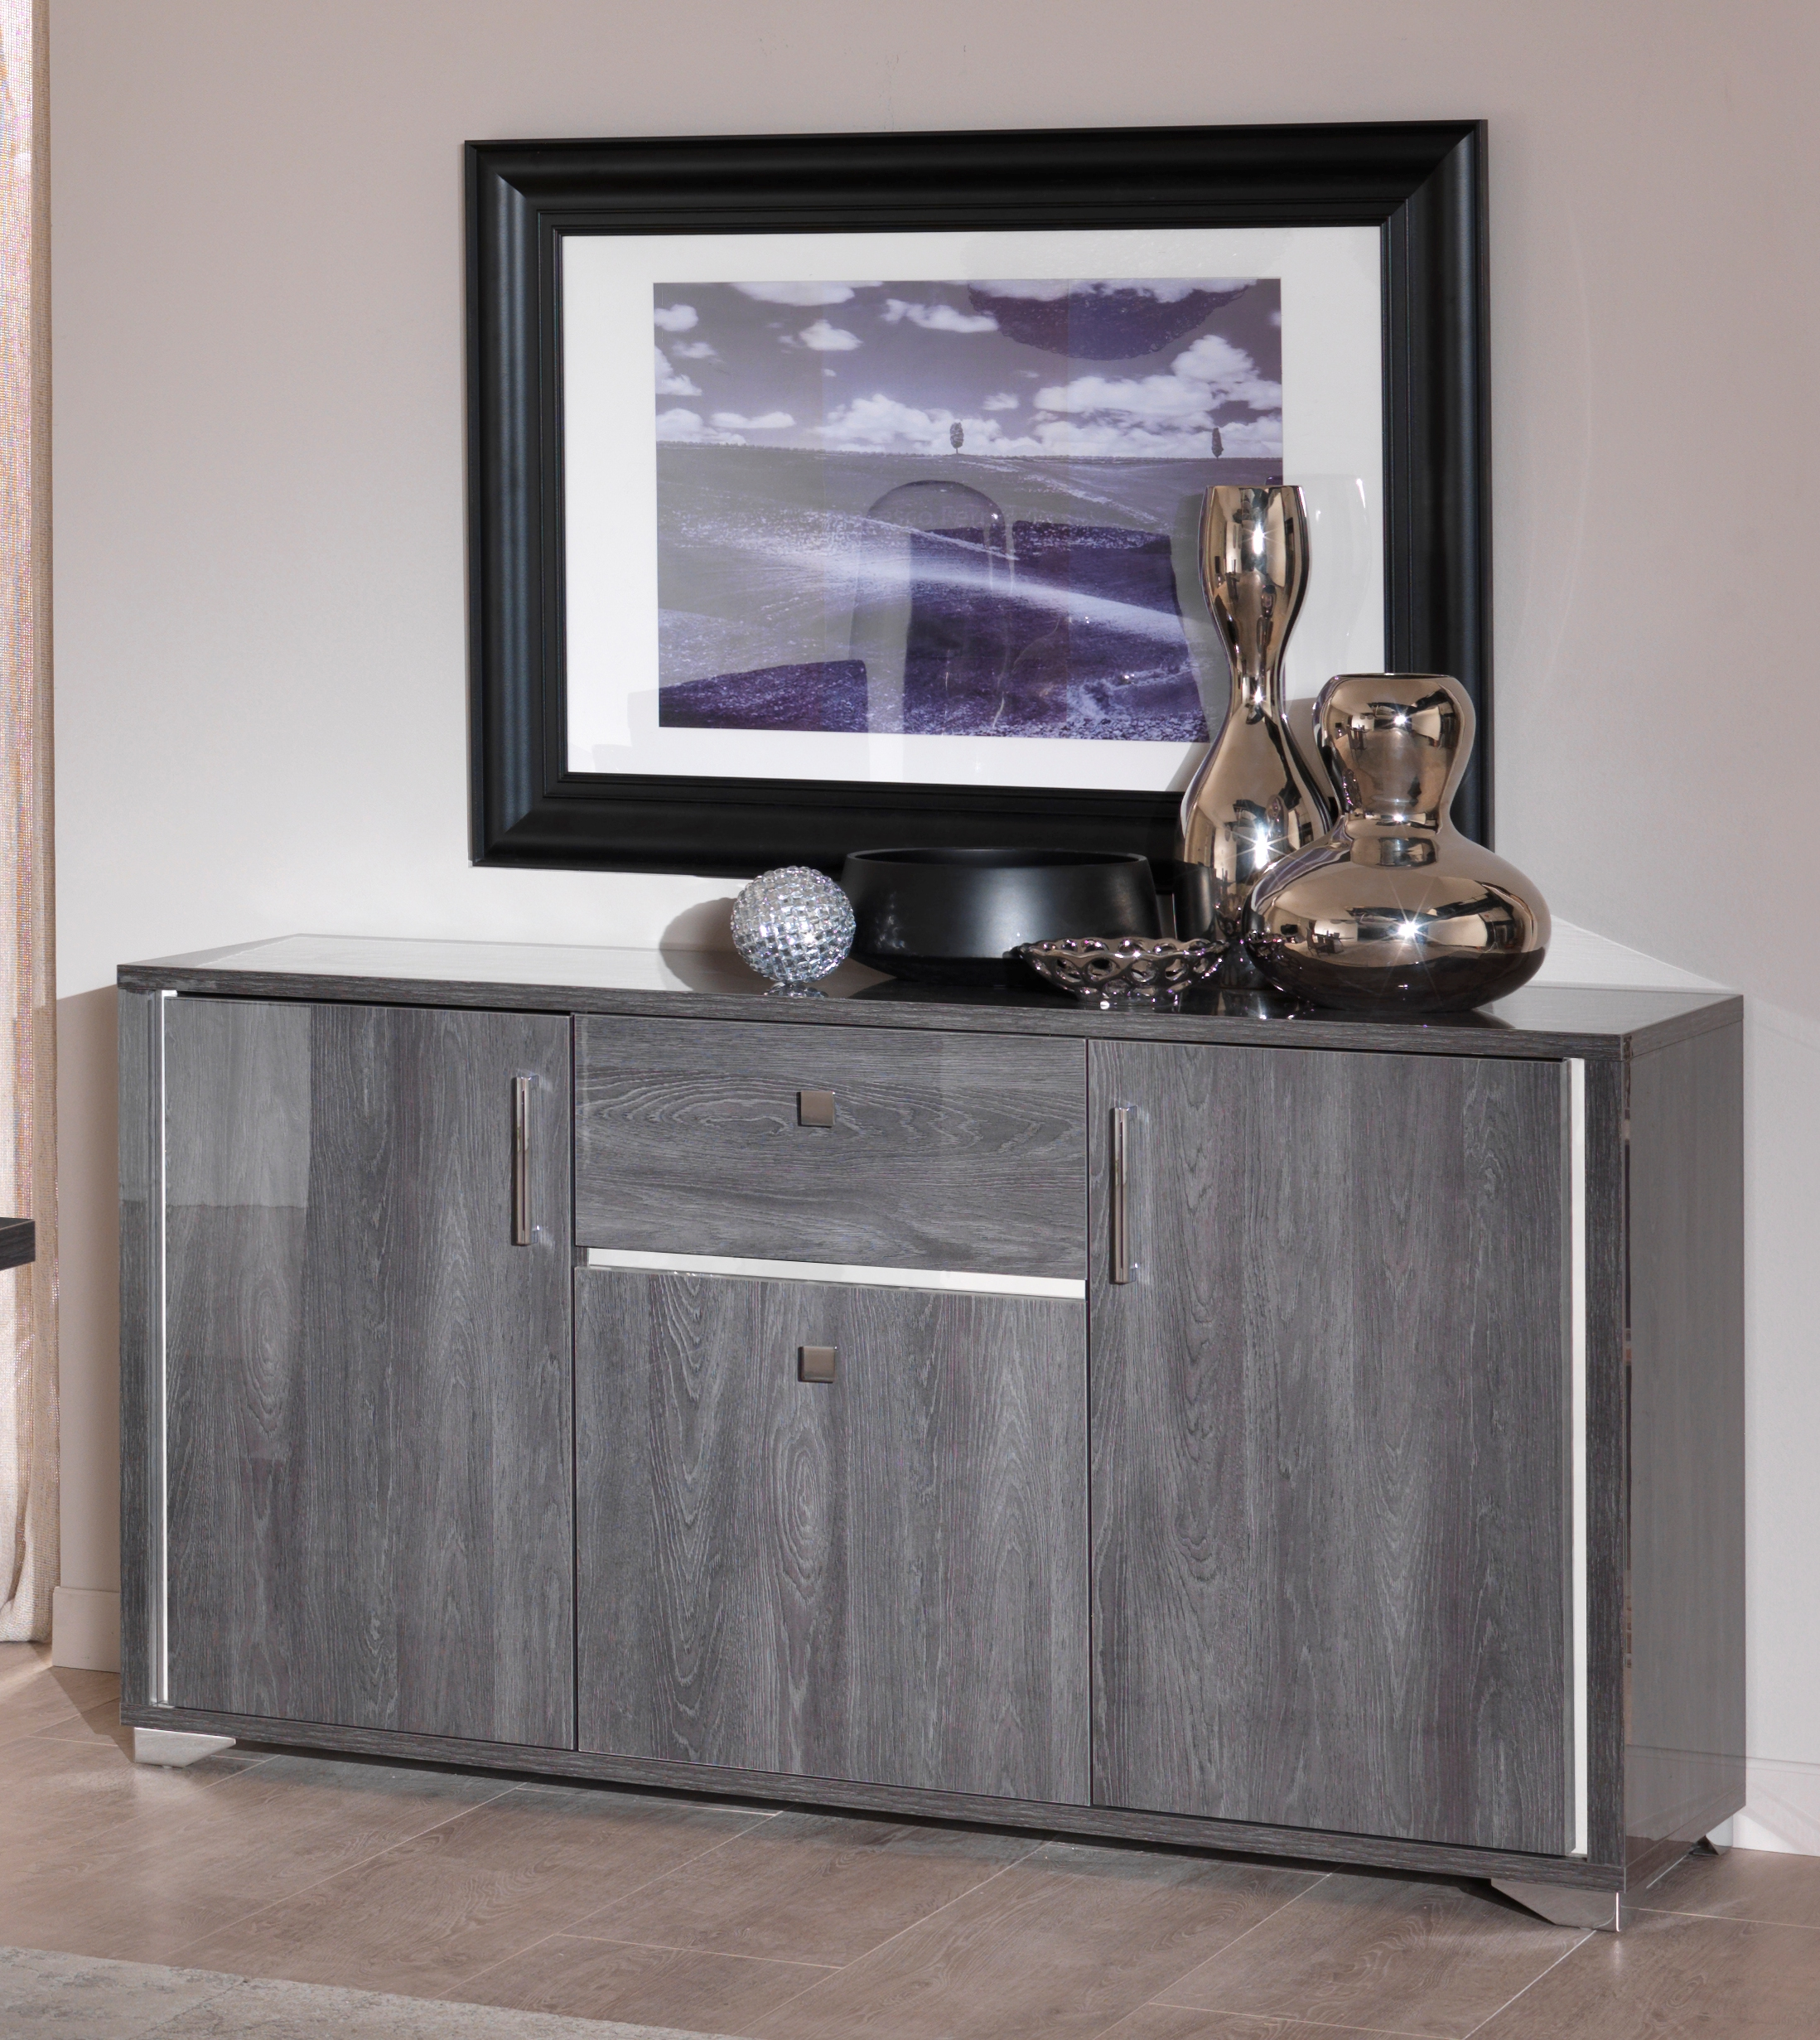 Armony 3 doors 1 drawer sideboard